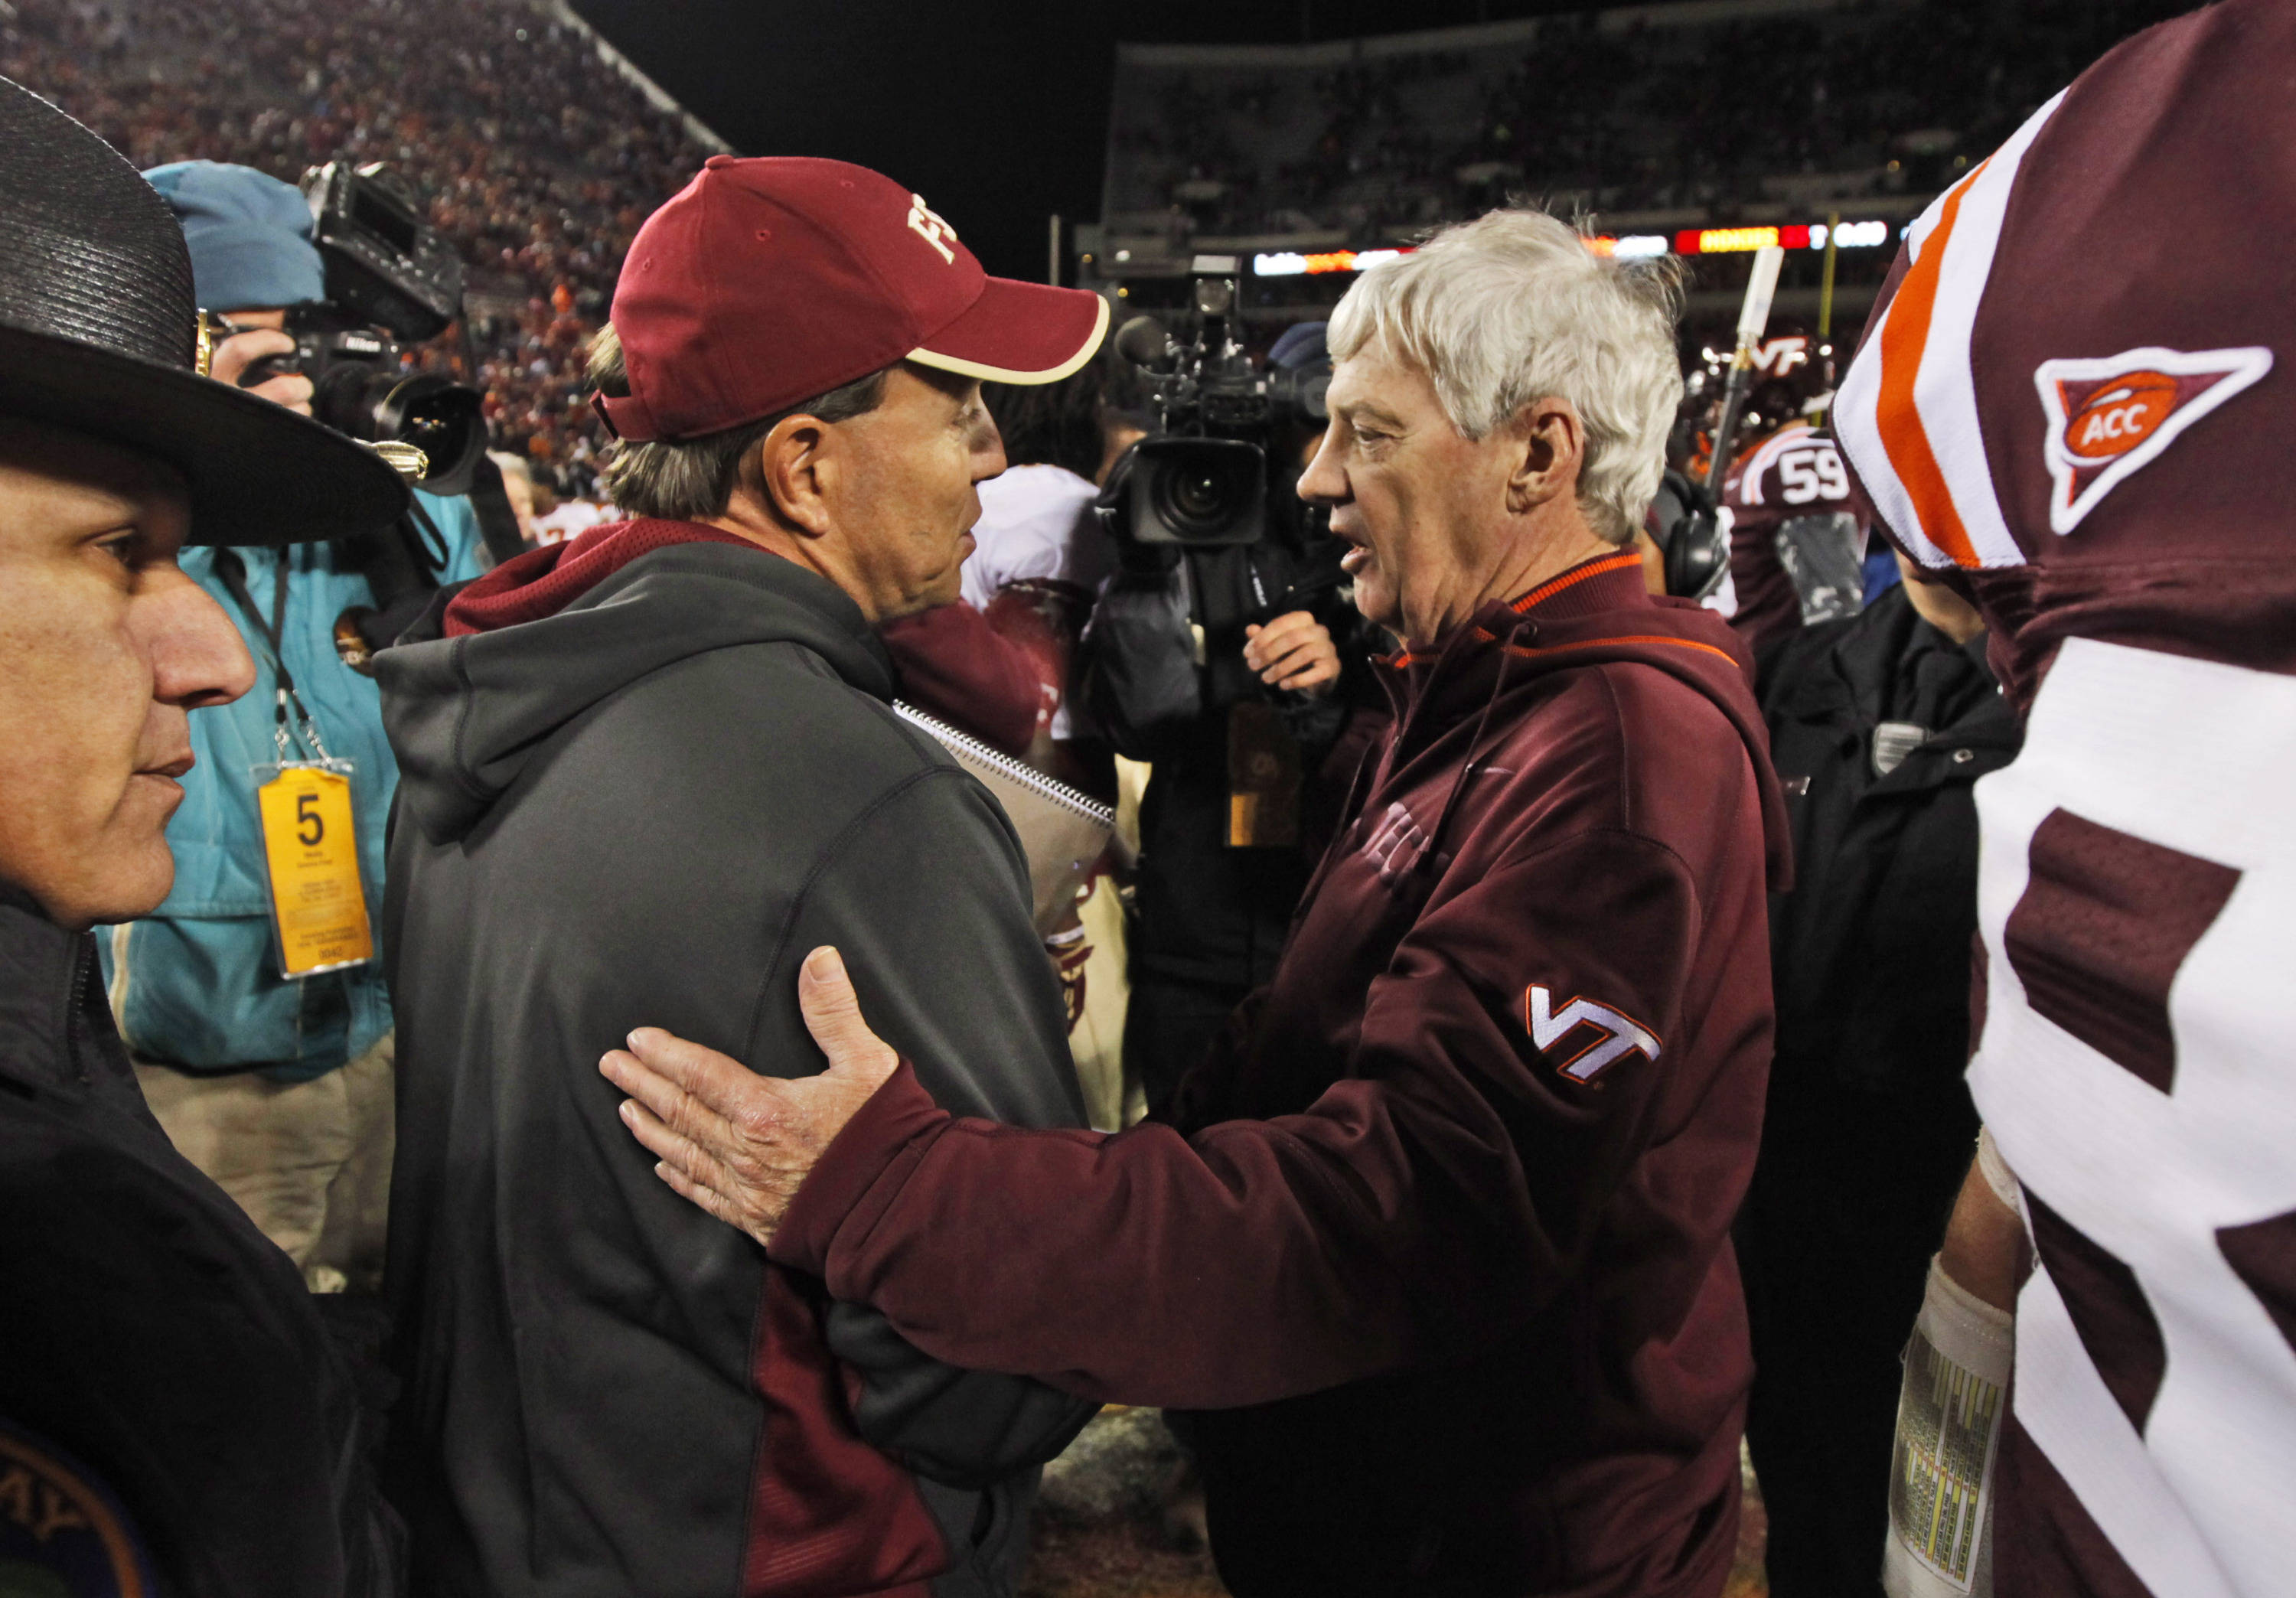 Florida State coach Jimbo Fisher, left, and Virginia coach, Frank Beamer greet each other after the game. (AP Photo/Steve Helber)